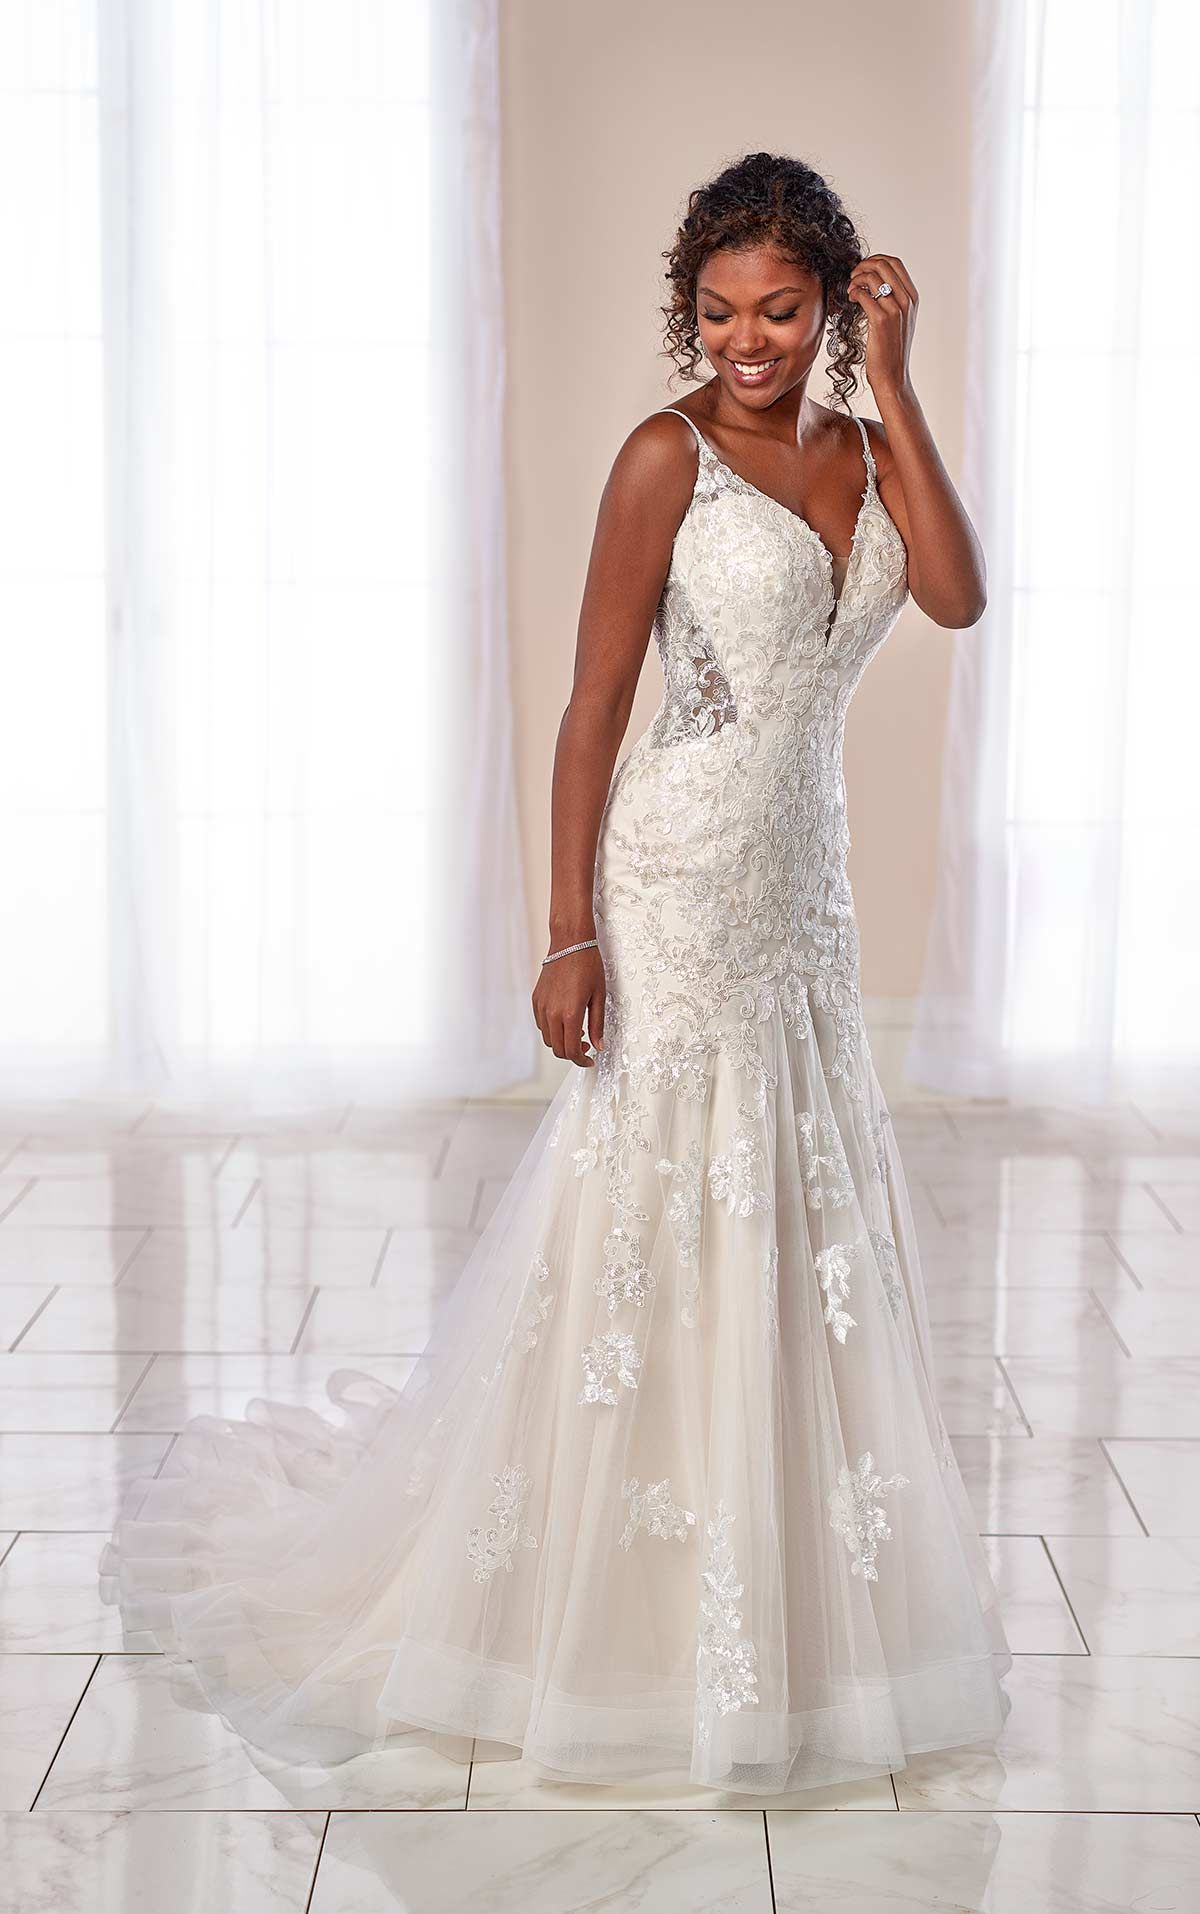 High Sparkle Wedding Dress With Sheer Detail Stella York Wedding Dresses Sparkle Wedding Dress York Wedding Dress Stella York Wedding Dress [ 1914 x 1200 Pixel ]